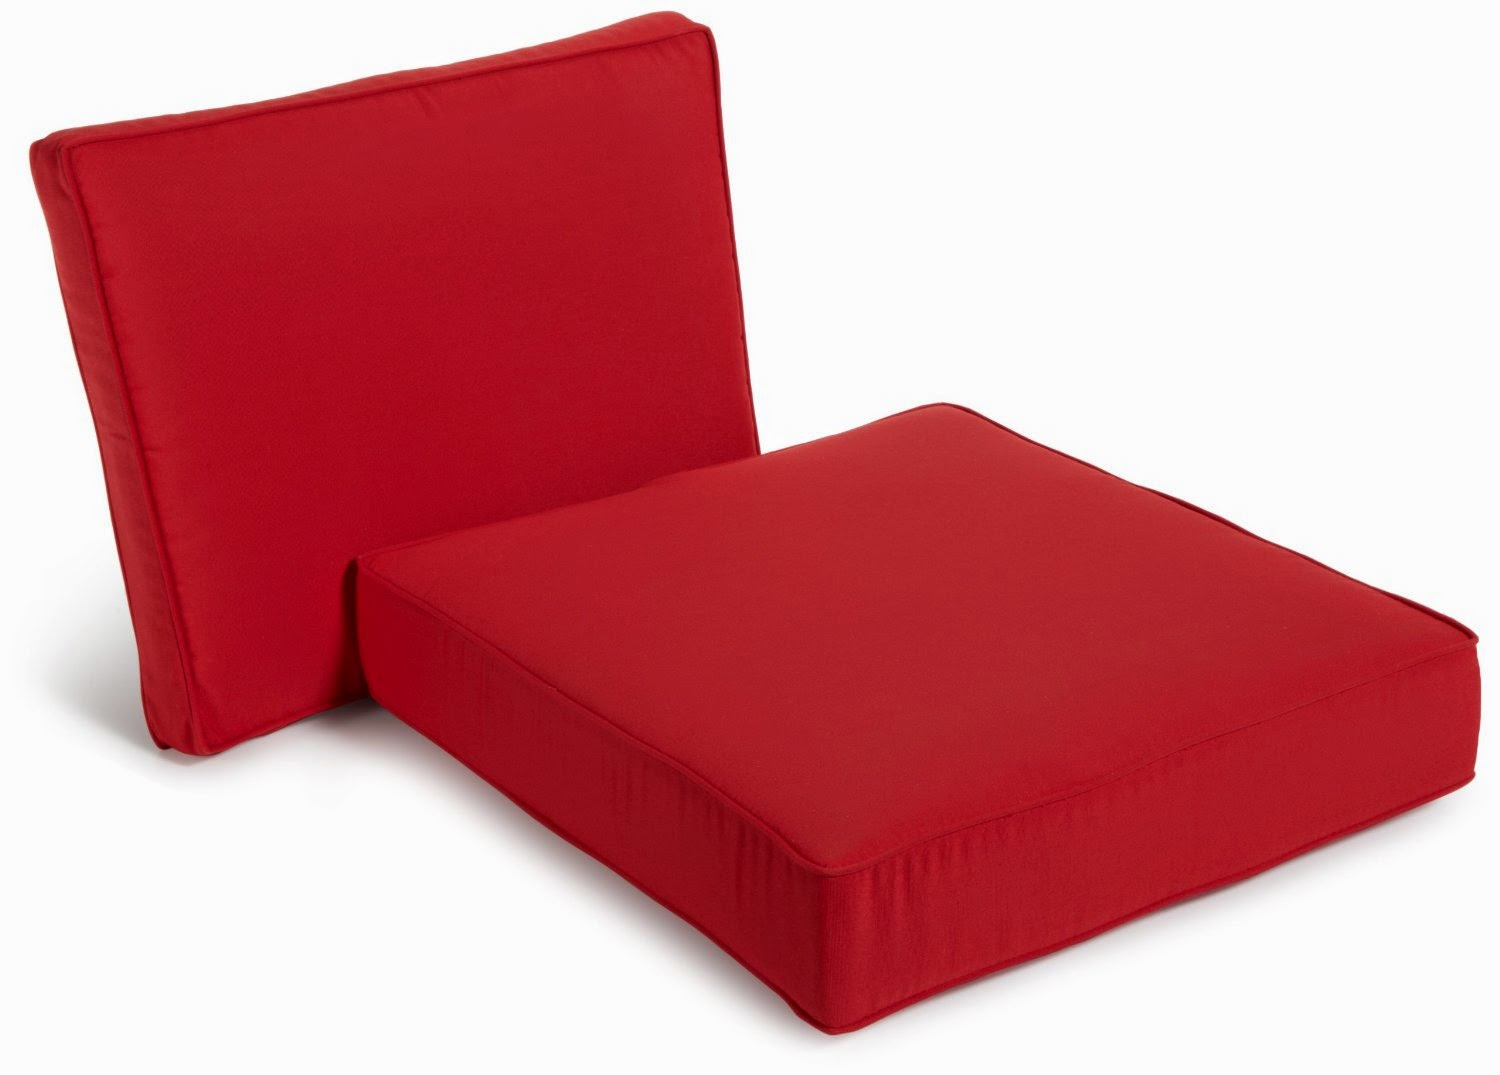 Sofa Bed Pads